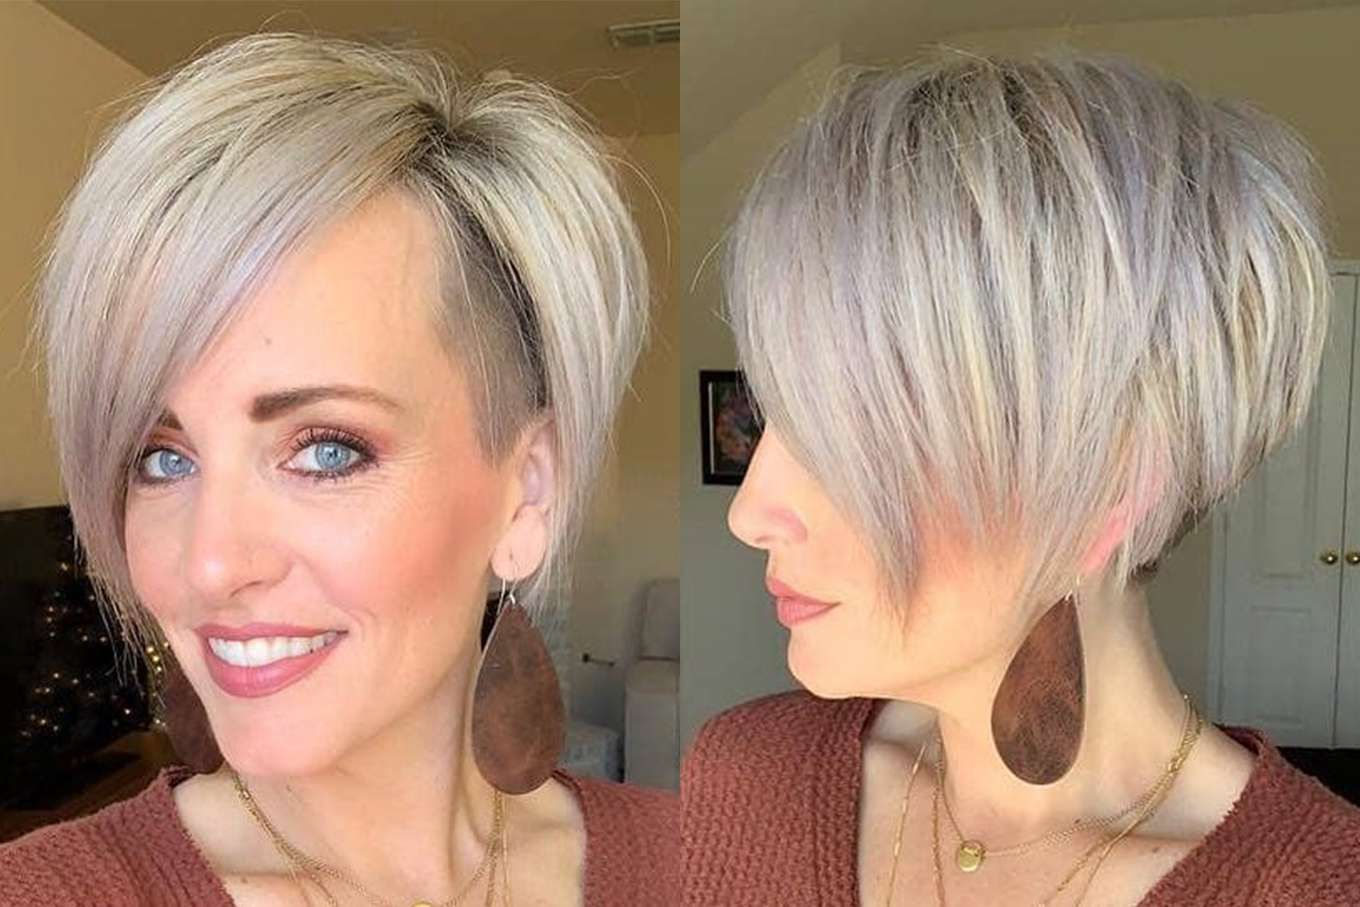 Haley Young Short Hairstyles 1 Short Hair Styles Hair Styles Short Hairstyles For Thick Hair